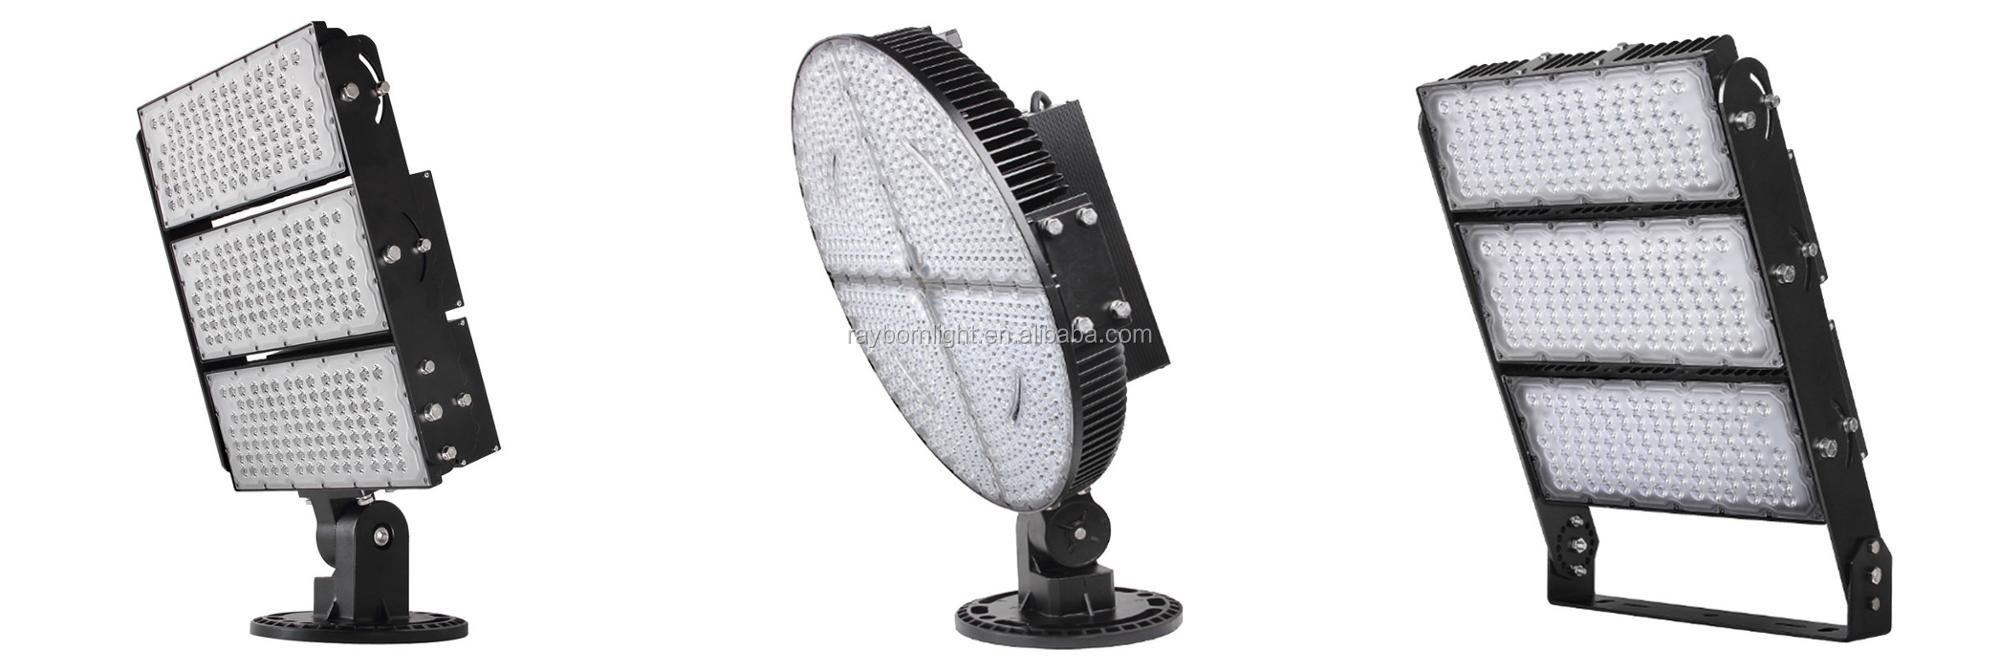 Tennis Court Soccer Sport Field Stadium Outdoor Floodlight 500W High Mast LED Flood Light